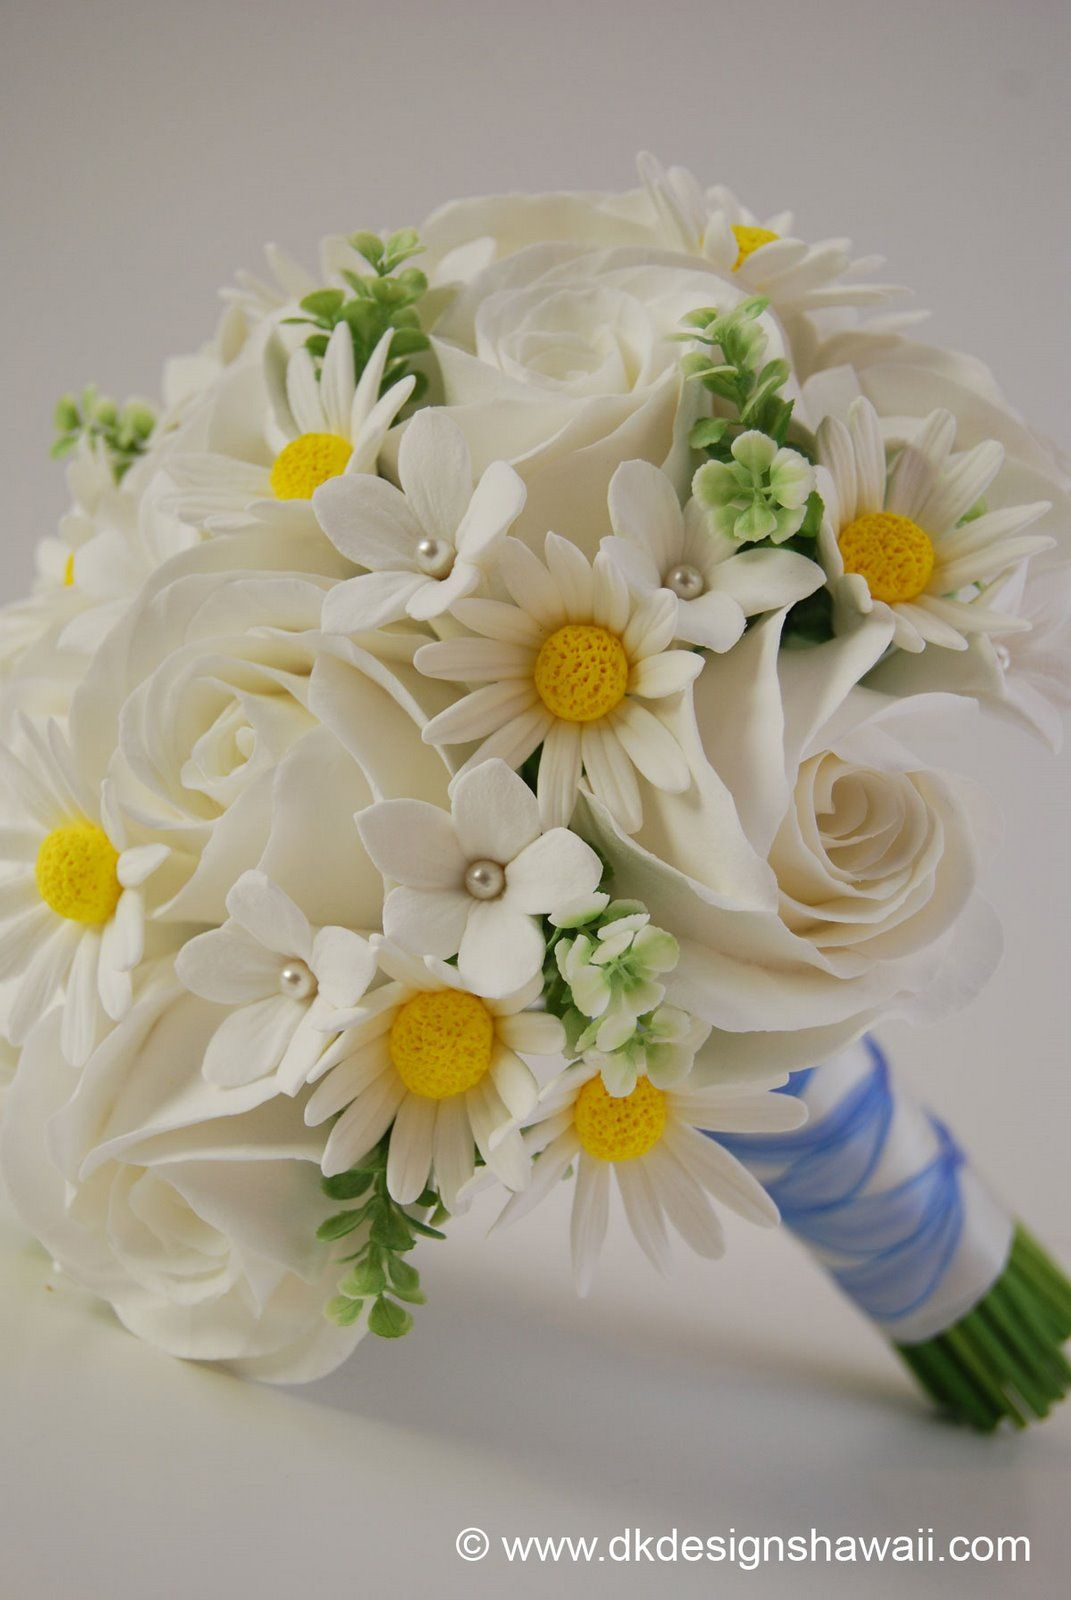 DK Designs: Simple Flowers = A Simply Beautiful Bridal Bouquet ...